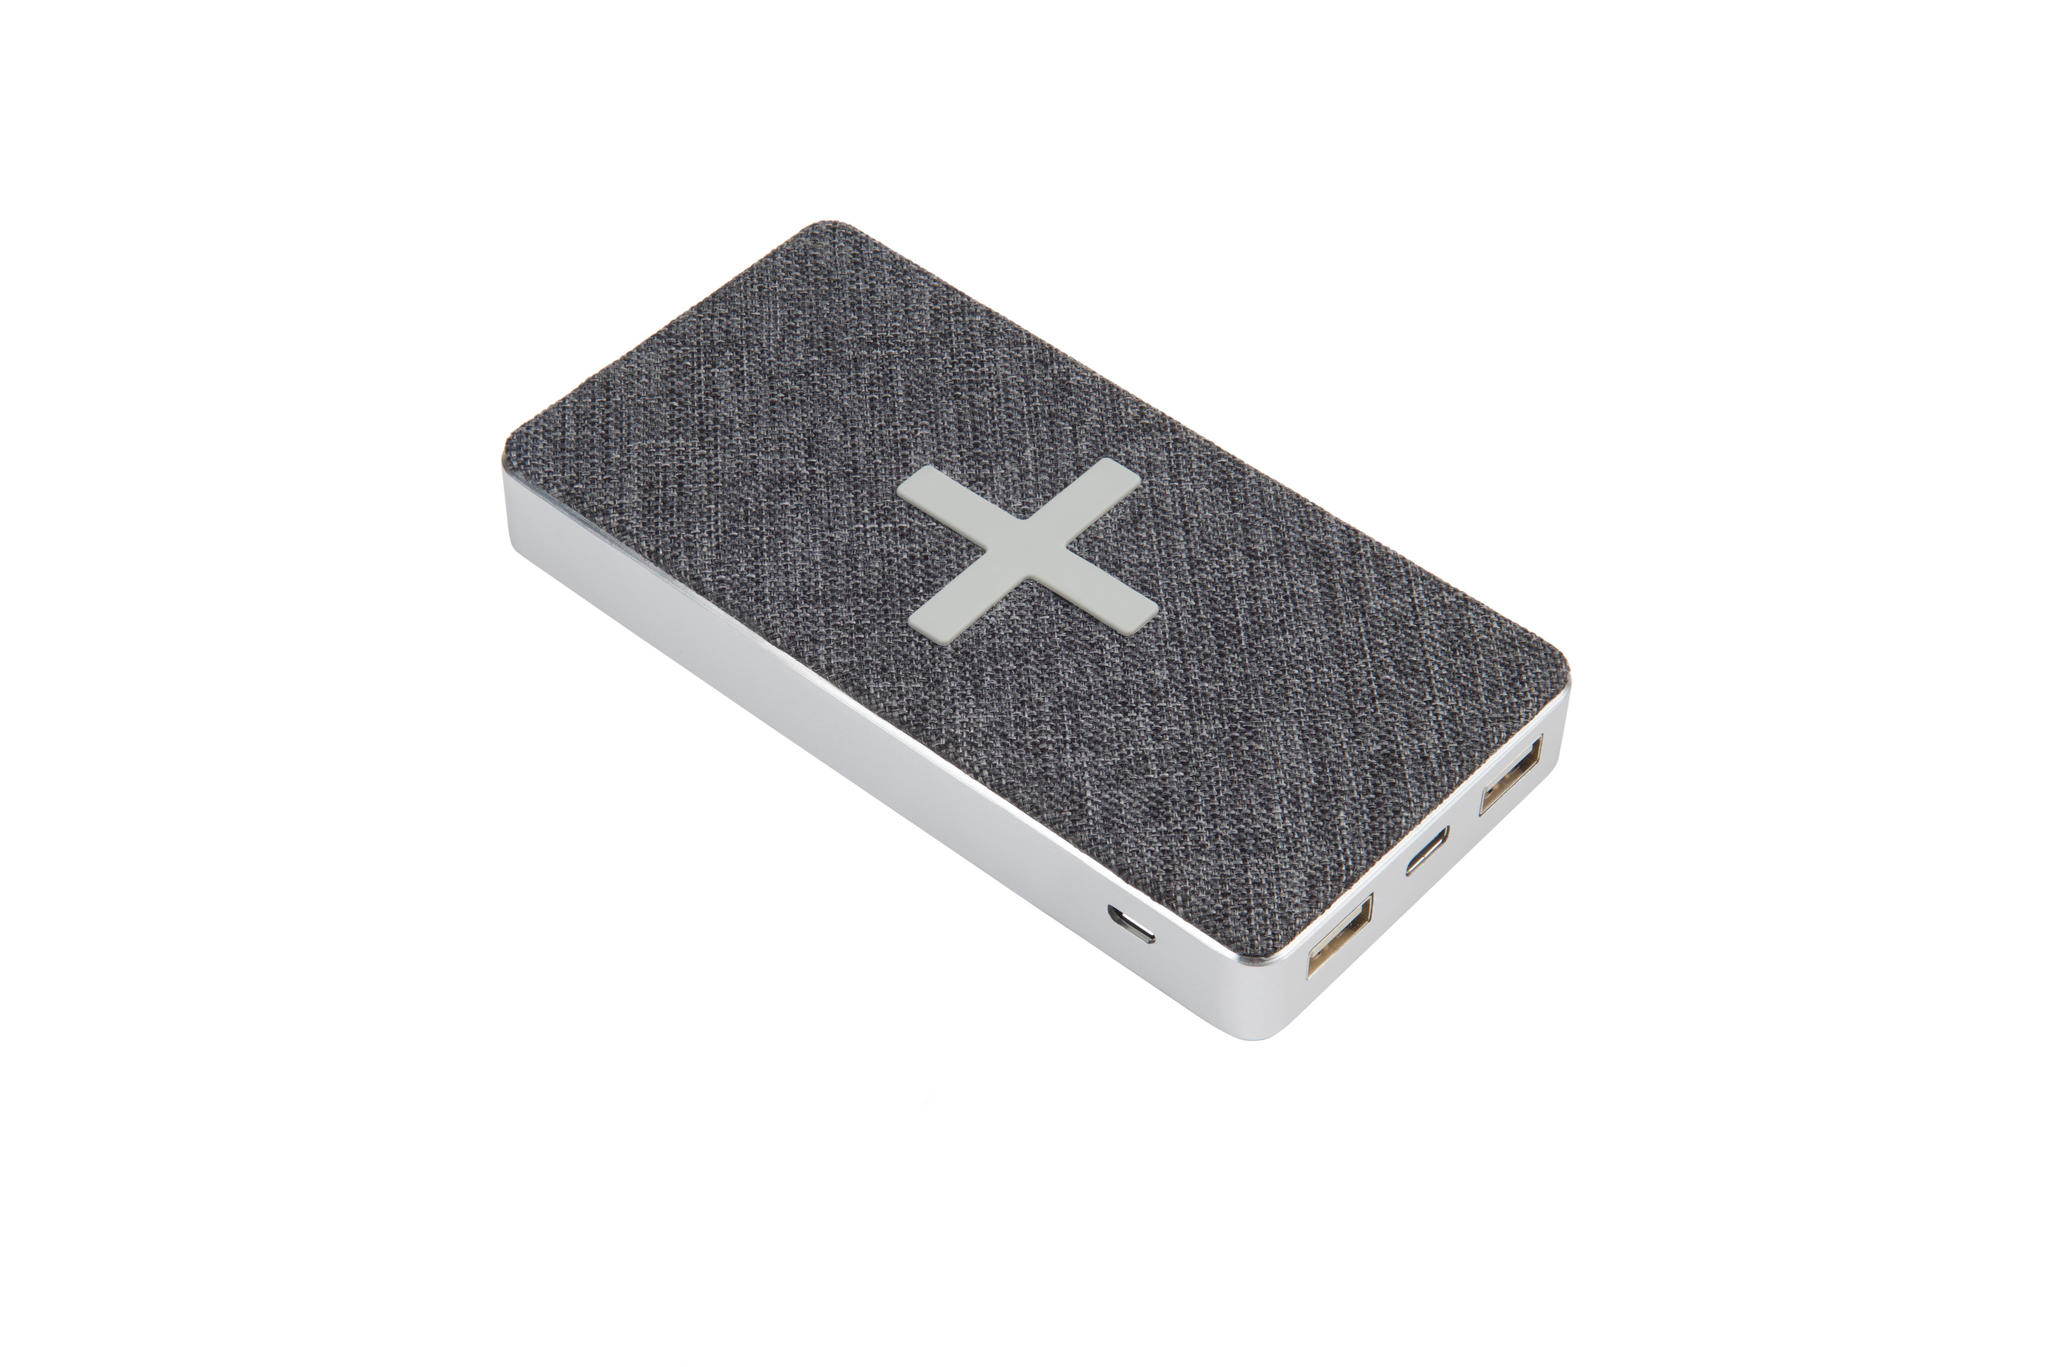 Xtorm 8000 Wave Qi powerbank